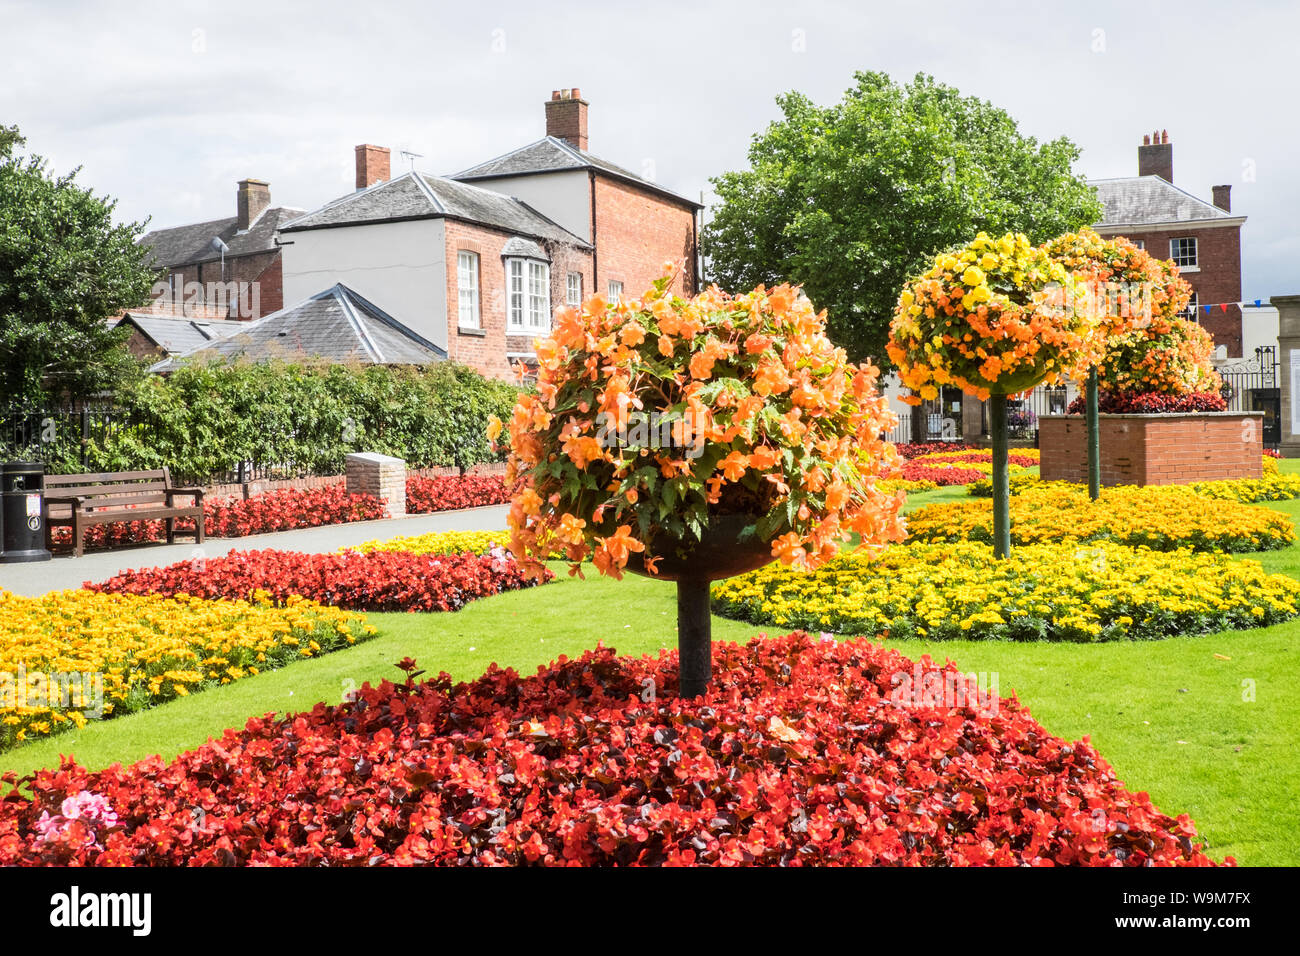 Colourful,colorful,floral,display,plants,flowers,at,Cae Glas Park,Oswestry,a,market,town,in,Shropshire,border,of, Wales,England,GB,UK, Stock Photo